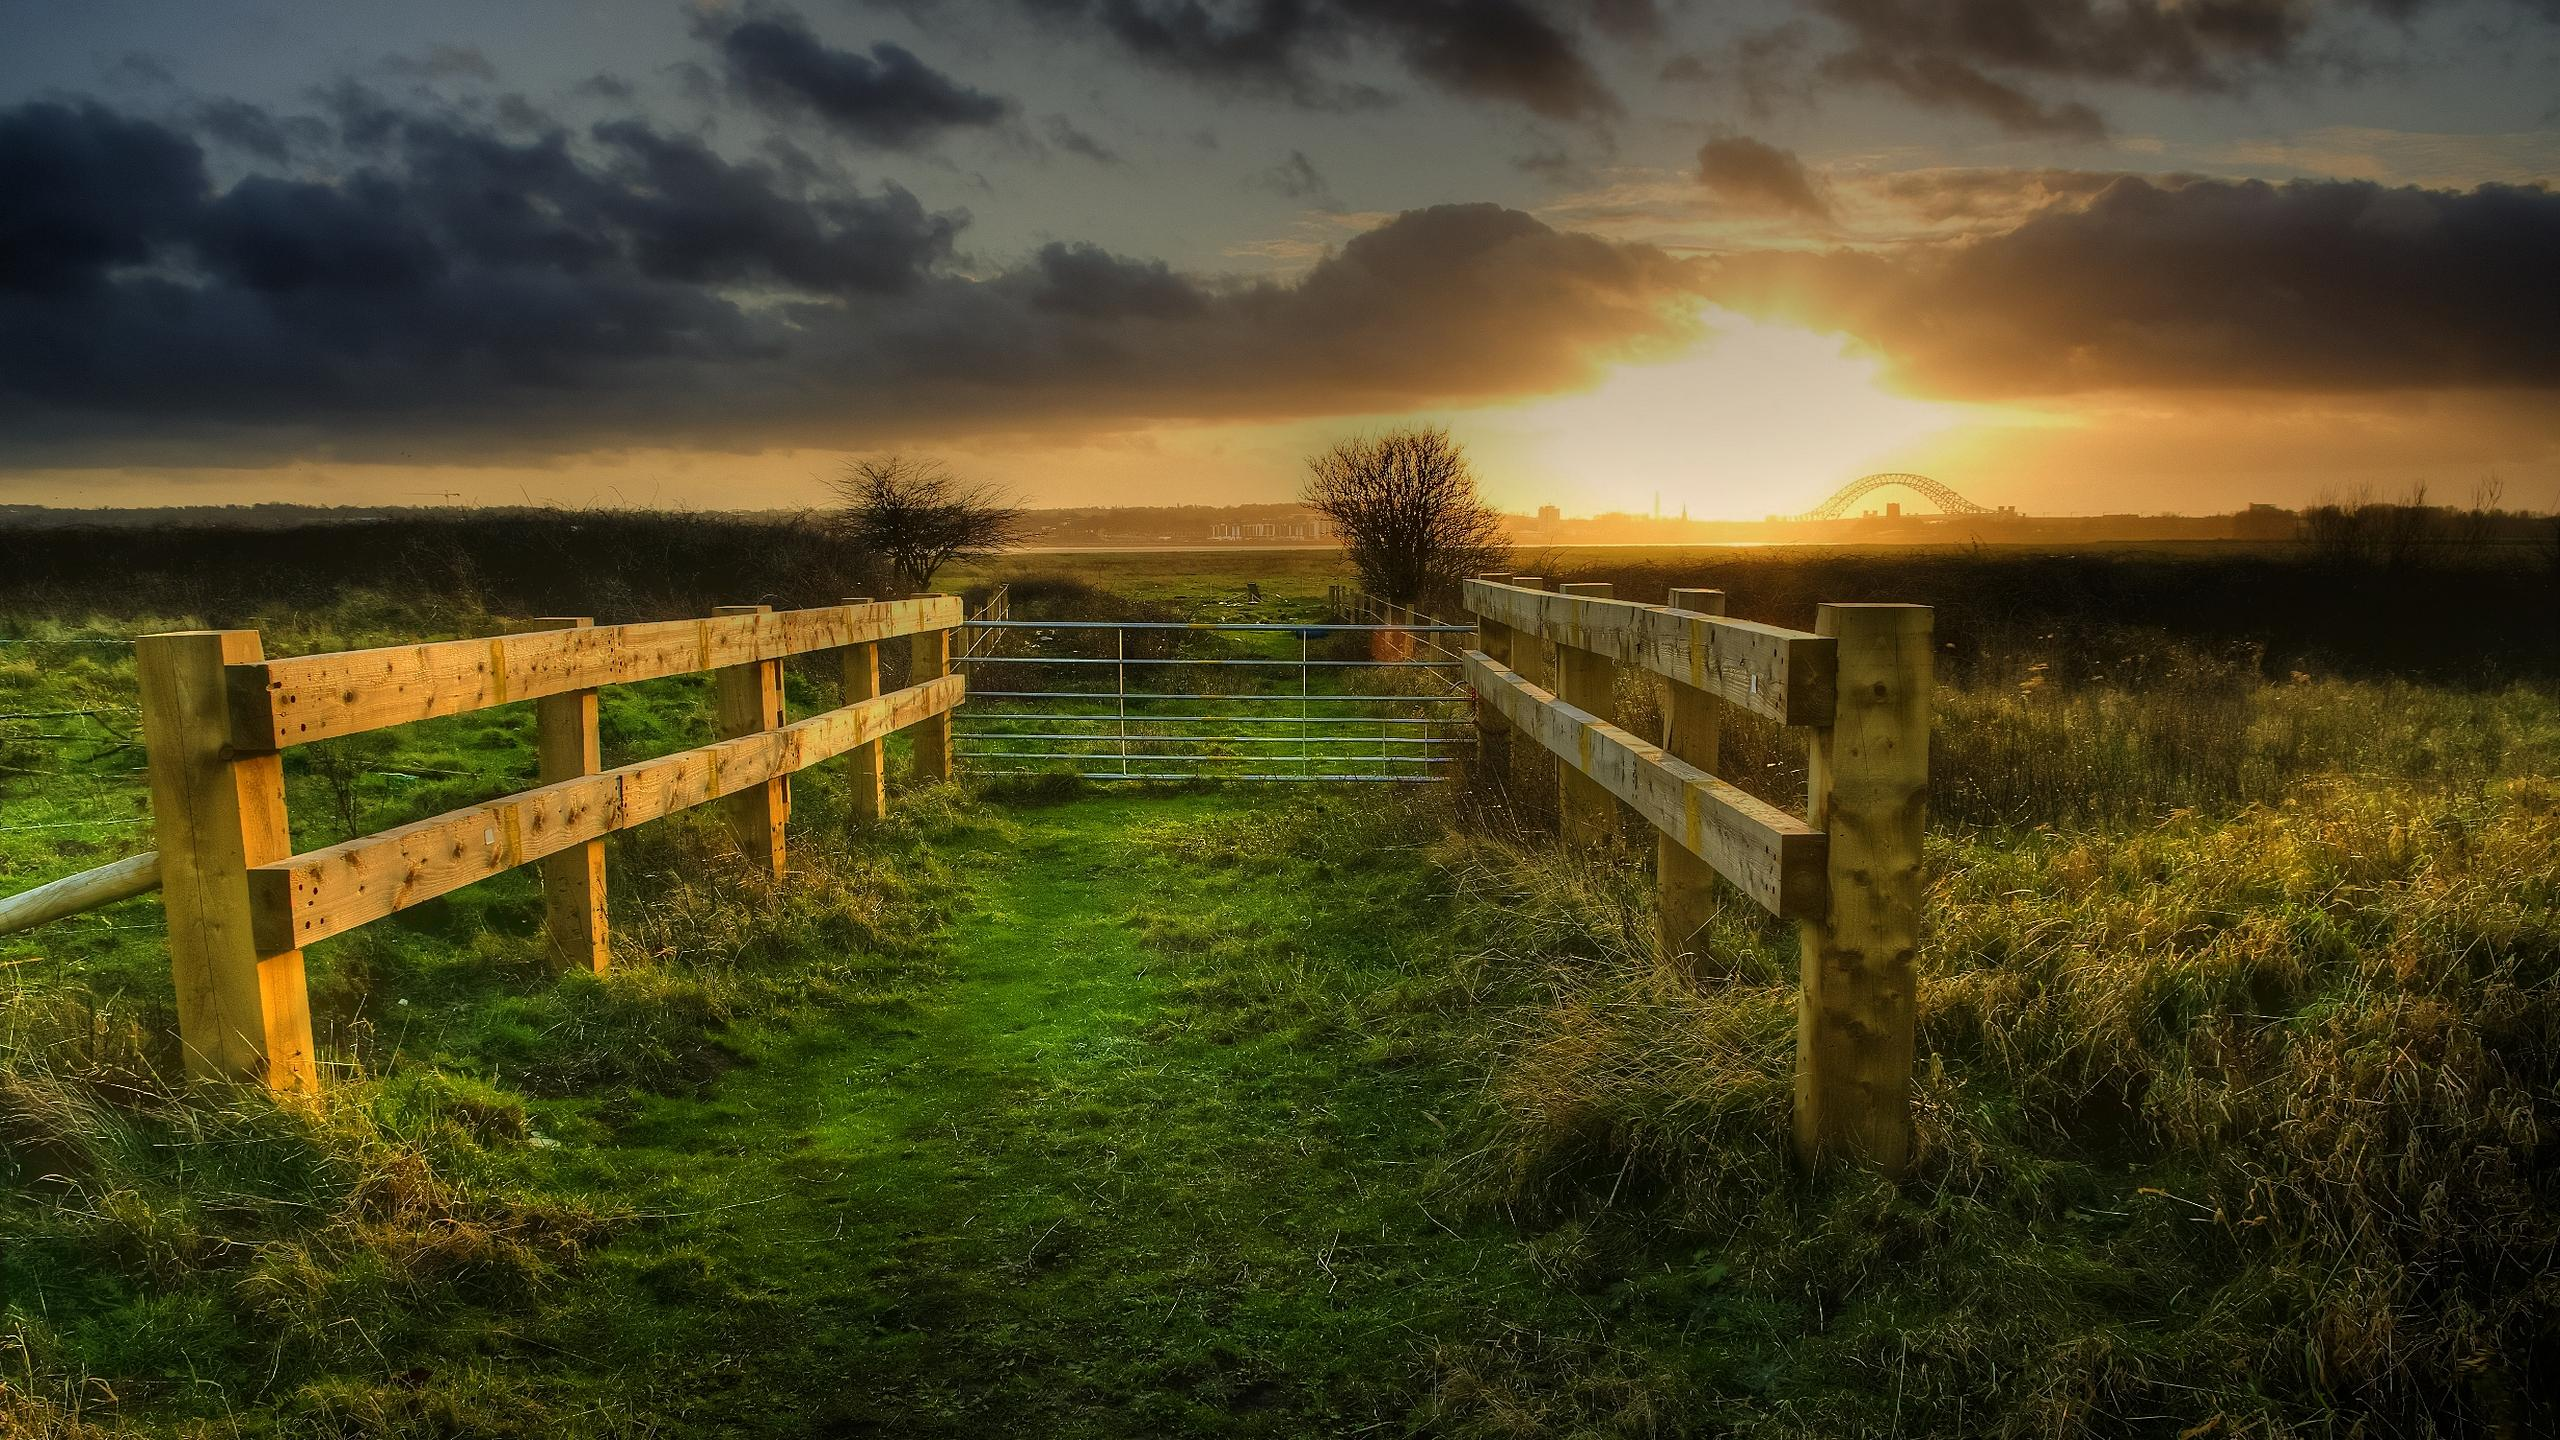 Download Fencing In The Fields wallpaper